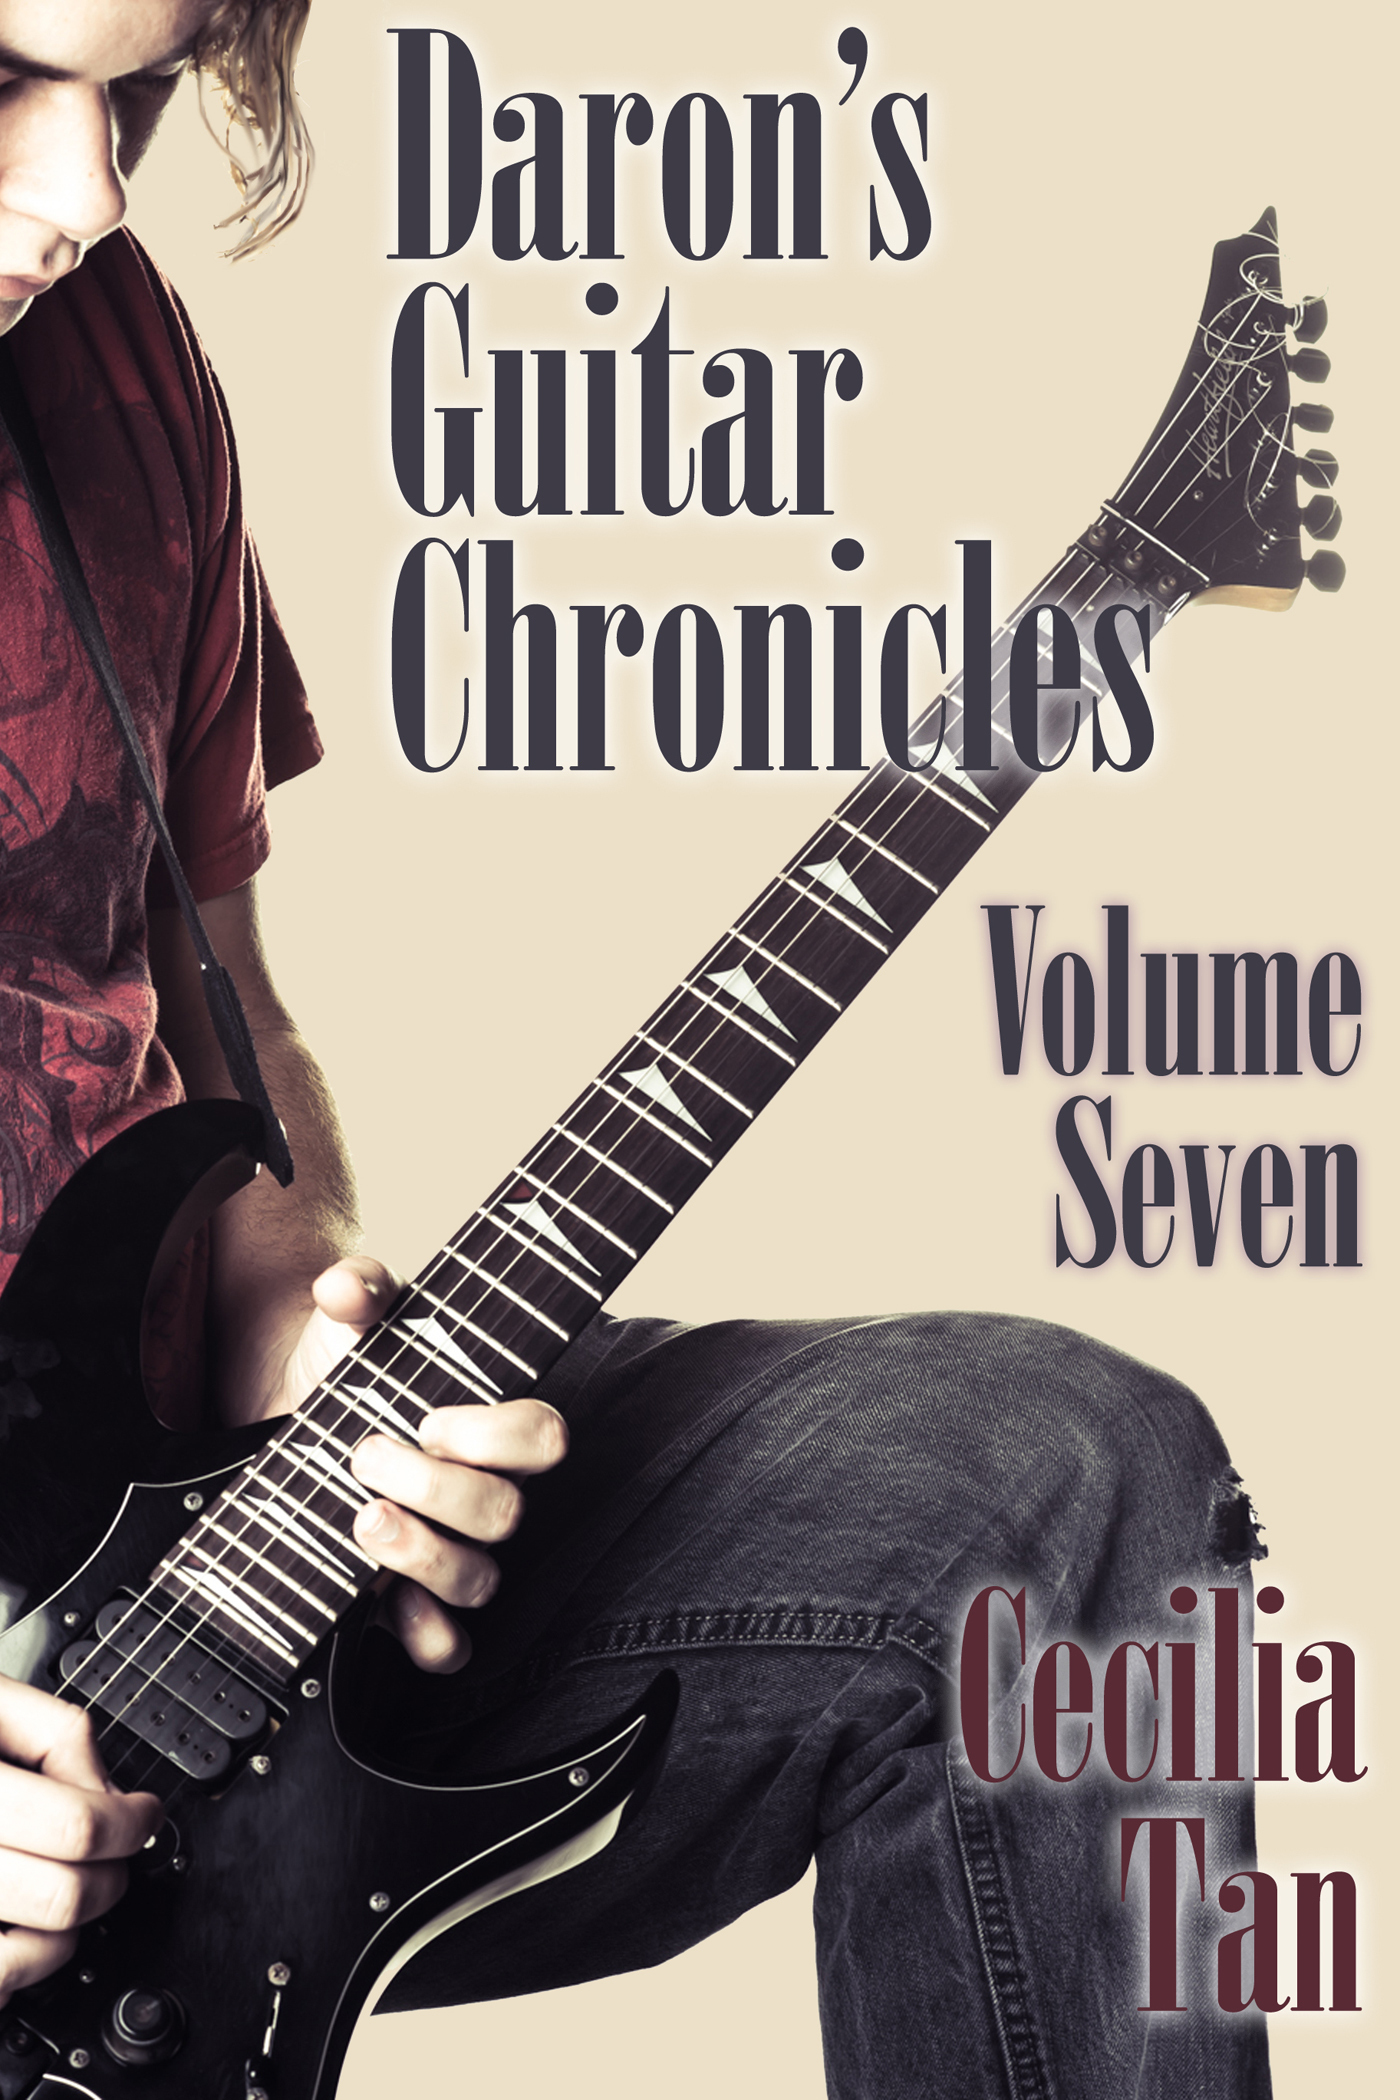 Daron's Guitar Chronicles: Volume Seven (Daron's Guitar Chronicles, #7)